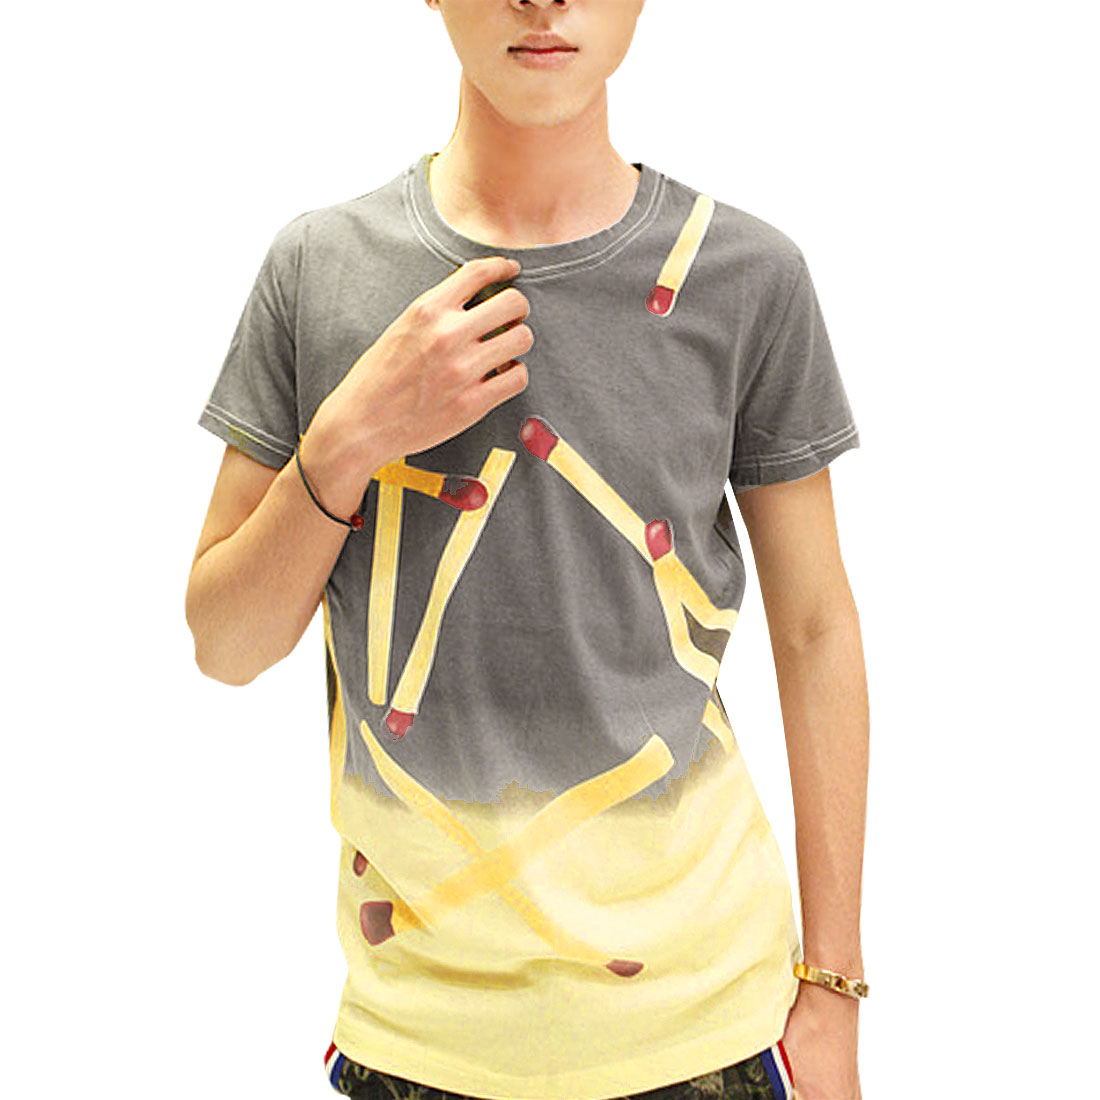 Men Fashional Gradient Design Matchsticks Pattern T-Shirt Top Gray Yellow S